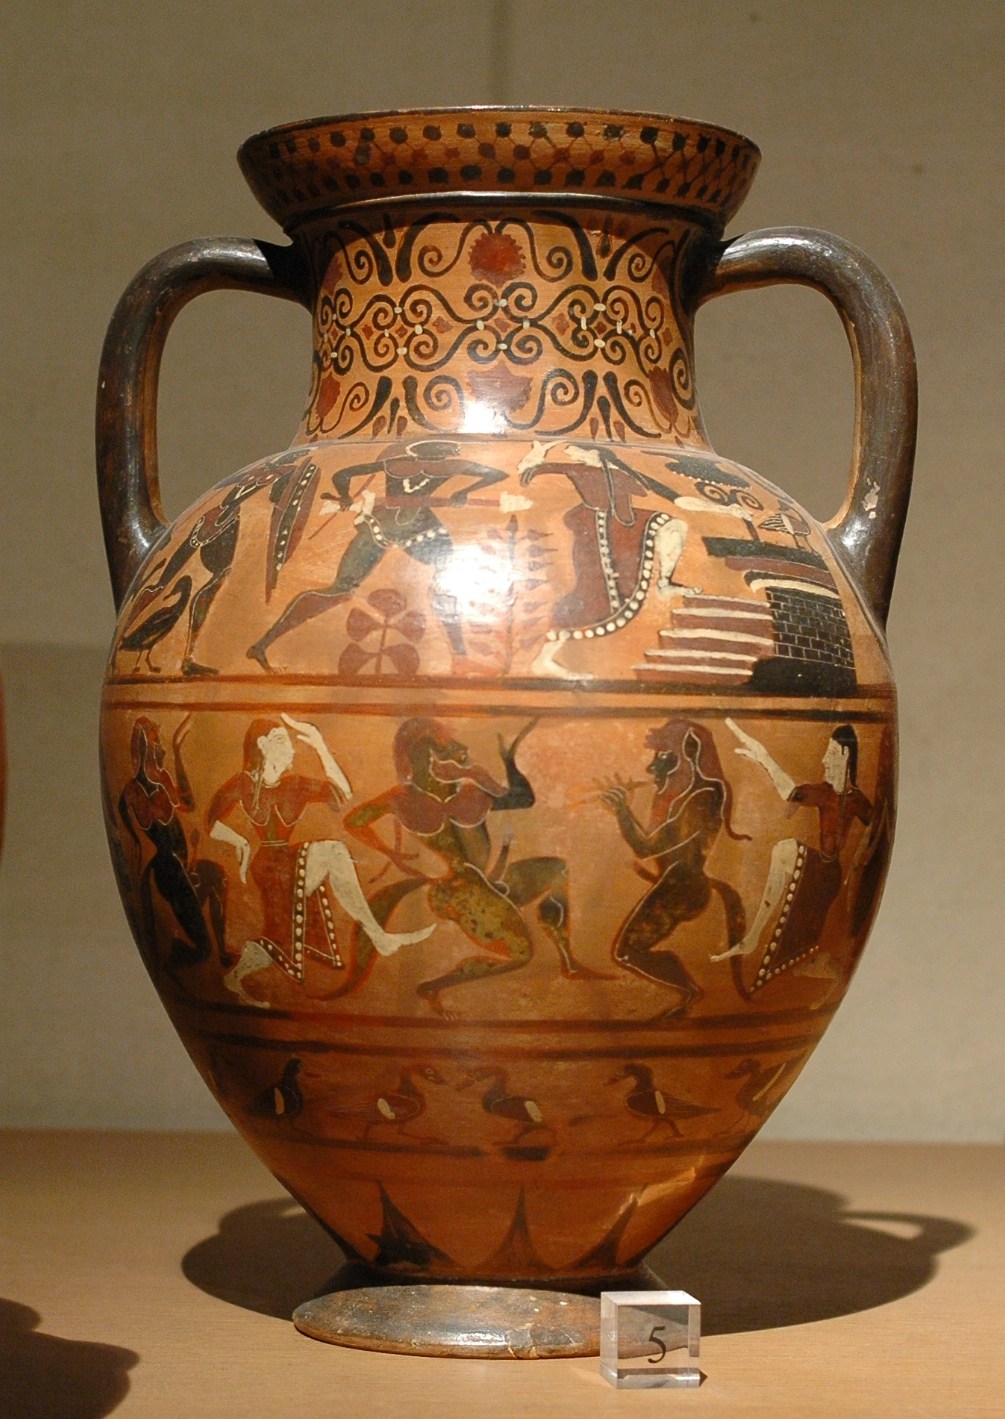 Etruscan vase history 2701 wiki fandom powered by wikia etruscan vase floridaeventfo Gallery